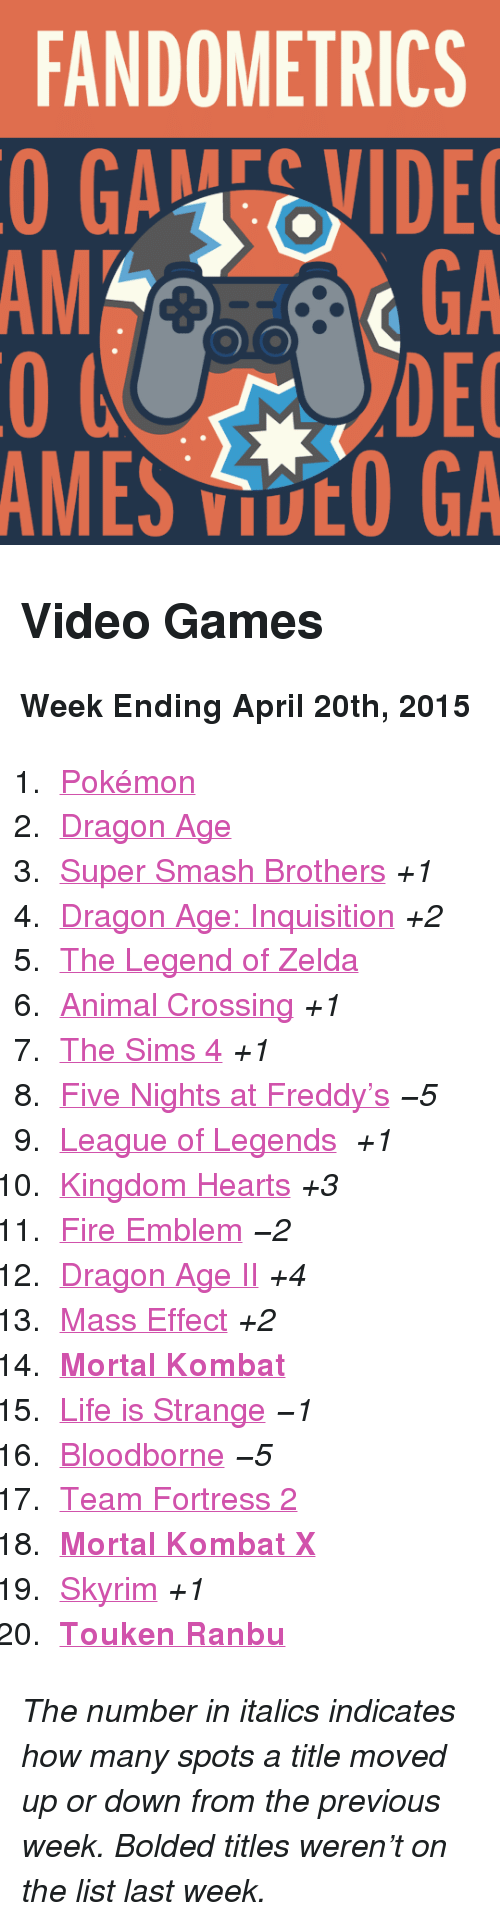 """Fire, League of Legends, and Life: FANDOMETRICS  GAEVIDE  GA  DEC  AMES VOO GA  AM <h2>Video Games</h2><p><b>Week Ending April 20th, 2015</b></p><ol><li><a href=""""http://www.tumblr.com/search/pokemon"""">Pokémon</a></li>  <li><a href=""""http://www.tumblr.com/search/dragon%20age"""">Dragon Age</a></li>  <li><a href=""""http://www.tumblr.com/search/super%20smash%20bros"""">Super Smash Brothers</a><i>+1</i></li>  <li><a href=""""http://www.tumblr.com/search/dragon%20age%20inquisition"""">Dragon Age: Inquisition</a><i>+2</i></li>  <li><a href=""""http://www.tumblr.com/search/legend%20of%20zelda"""">The Legend of Zelda</a></li>  <li><a href=""""http://www.tumblr.com/search/acnl"""">Animal Crossing</a><i>+1</i></li>  <li><a href=""""http://www.tumblr.com/search/sims%204"""">The Sims 4</a><i>+1</i></li>  <li><a href=""""http://www.tumblr.com/search/five%20nights%20at%20freddy's"""">Five Nights at Freddy&rsquo;s</a><i>−5</i></li>  <li><a href=""""http://www.tumblr.com/search/league%20of%20legends"""">League of Legends</a> <i>+1</i></li>  <li><a href=""""http://www.tumblr.com/search/kingdom%20hearts"""">Kingdom Hearts</a><i>+3</i></li>  <li><a href=""""http://www.tumblr.com/search/fire%20emblem"""">Fire Emblem</a><i>−2</i></li>  <li><a href=""""http://www.tumblr.com/search/dragon%20age%202"""">Dragon Age II</a><i>+4</i></li>  <li><a href=""""http://www.tumblr.com/search/mass%20effect"""">Mass Effect</a><i>+2</i></li>  <li><a href=""""http://www.tumblr.com/search/mortal%20kombat""""><b>Mortal Kombat</b></a></li>  <li><a href=""""http://www.tumblr.com/search/life%20is%20strange"""">Life is Strange</a><i>−1</i></li>  <li><a href=""""http://www.tumblr.com/search/bloodborne"""">Bloodborne</a><i>−5</i></li>  <li><a href=""""http://www.tumblr.com/search/tf2"""">Team Fortress 2</a></li>  <li><a href=""""http://www.tumblr.com/search/mortal%20kombat%20x""""><b>Mortal Kombat X</b></a></li>  <li><a href=""""http://www.tumblr.com/search/skyrim"""">Skyrim</a><i>+1</i></li>  <li><a href=""""http://www.tumblr.com/search/touken%20ranbu""""><b>Touken Ranbu</b></a></li></ol><p><i>The number in italics indica"""